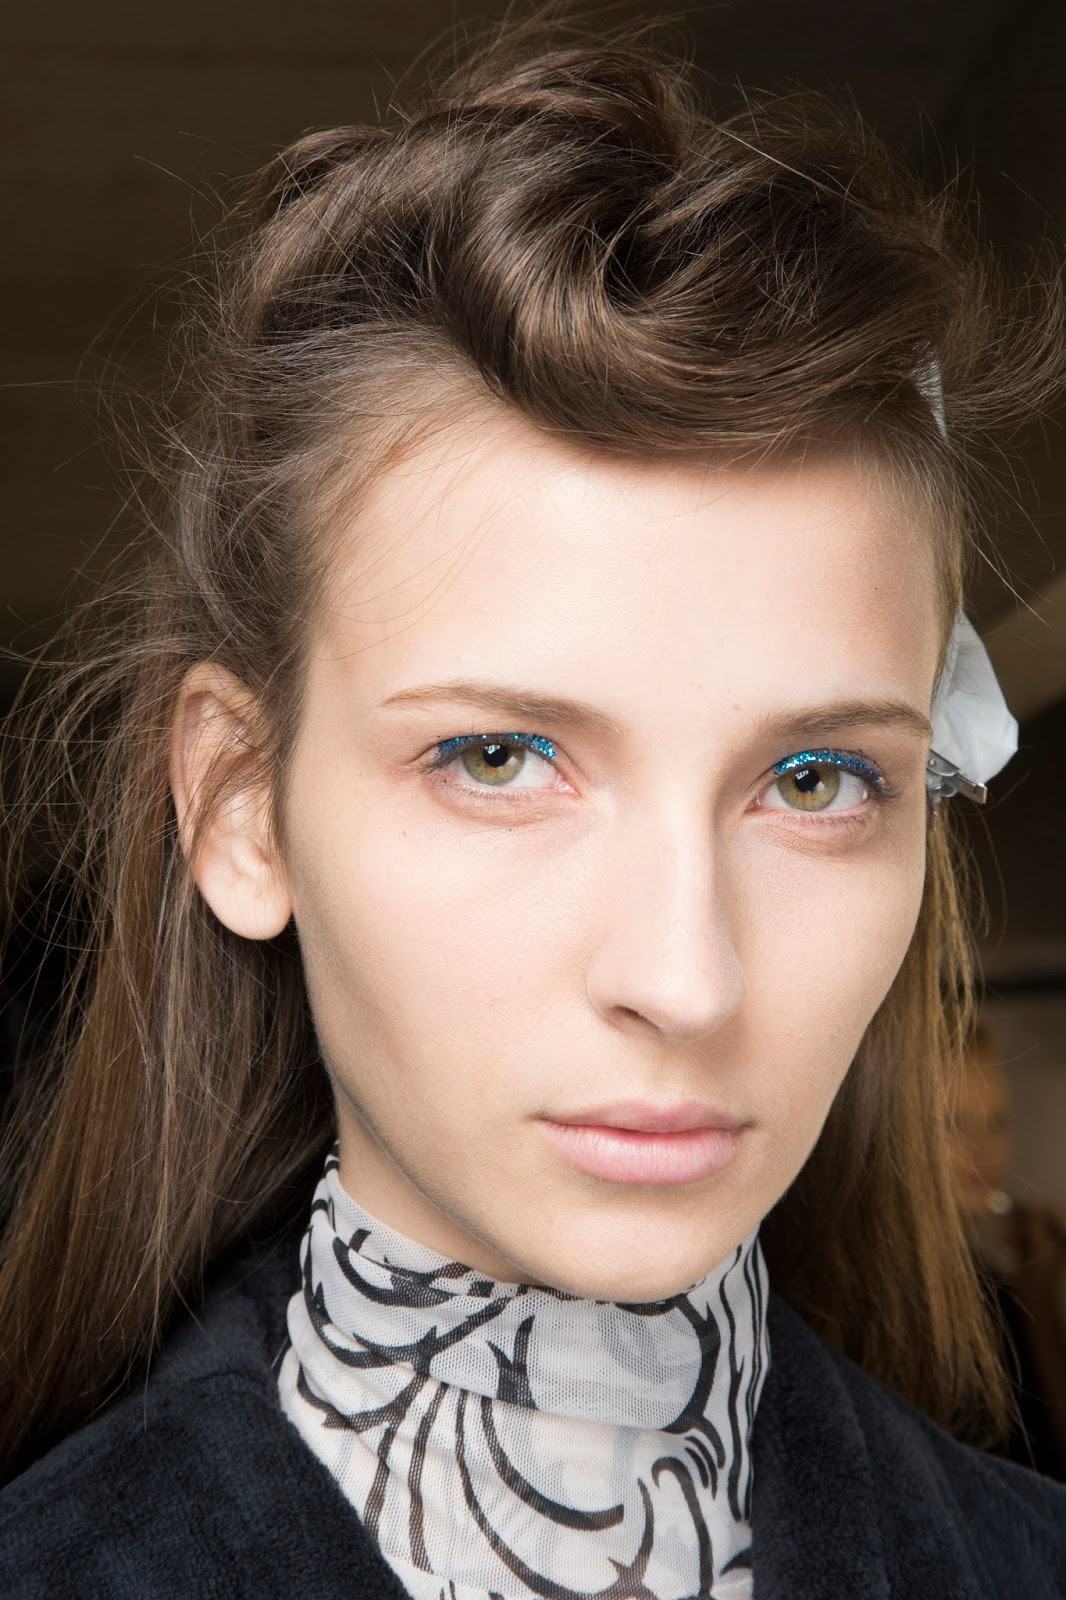 paris fashion week spring 2016, beauty blue glitter eyeliner 40s hair